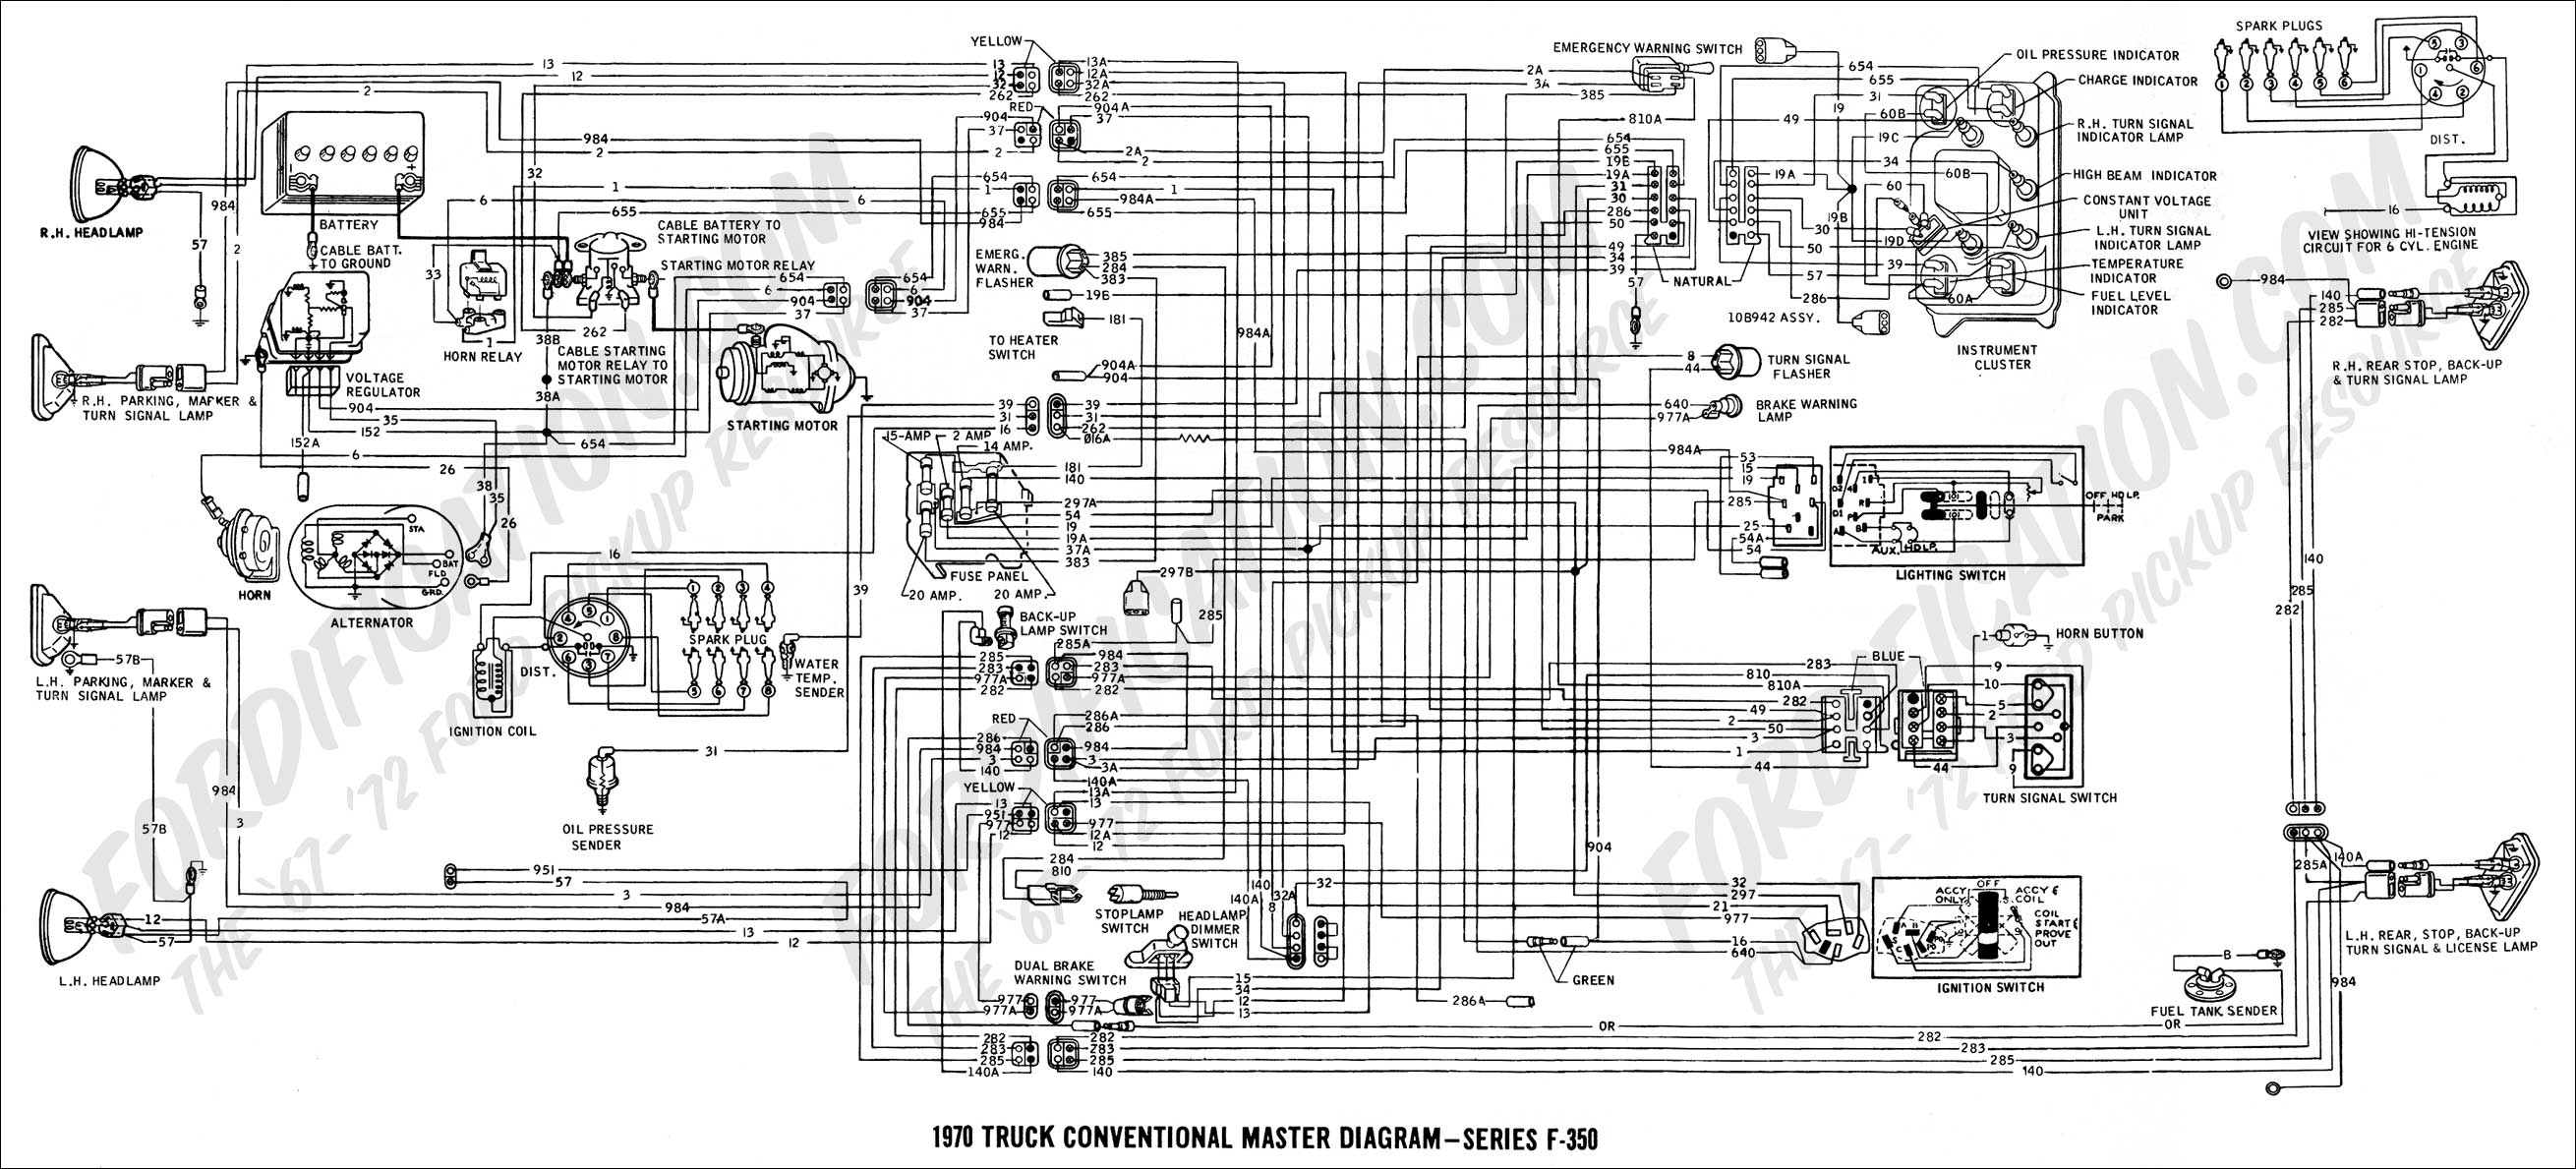 wiring diagram 70F350_master ford truck technical drawings and schematics section h wiring ford wiring schematics at n-0.co